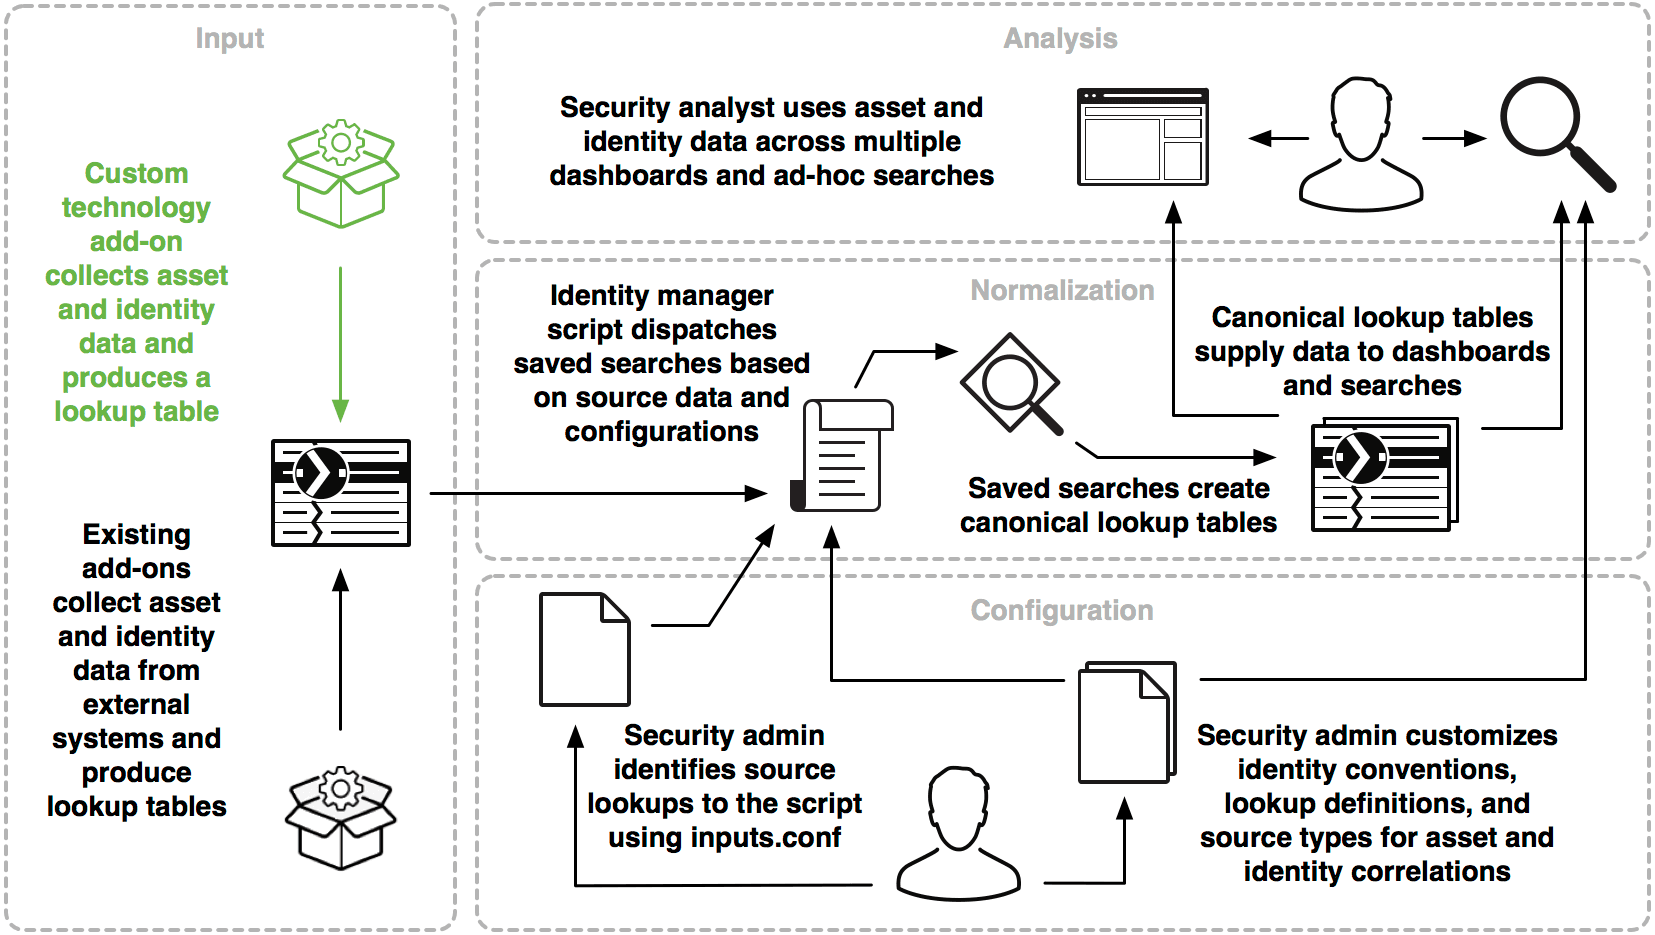 This diagram shows how admins, analysts, and developers can interact with the asset and identity framework. A set of add-ons collect asset and identity data from external systems and produce lookup tables. An identity manager script dispatches saved searches based on source data and configurations made by admins. Saved searches create canonical lookup tables which supply data to dashboards and searches. Security analysts use asset and identity data across multiple dashboards and ad hoc searches. Security admins perform configuration that affects the framework at two key stages: 1. The admin identifies source lookups to the identity manager script using inputs.conf. 2. The admin customizes identity conventions, lookup definitions, and source types for asset and identity correlations, affecting the way asset and identity information is understood by the identity manager script and in Splunk searches. Developers can integrate with the asset and identity framework by creating an add-on to collect asset and identity information from a custom source or service and formatting the results as a lookup table.